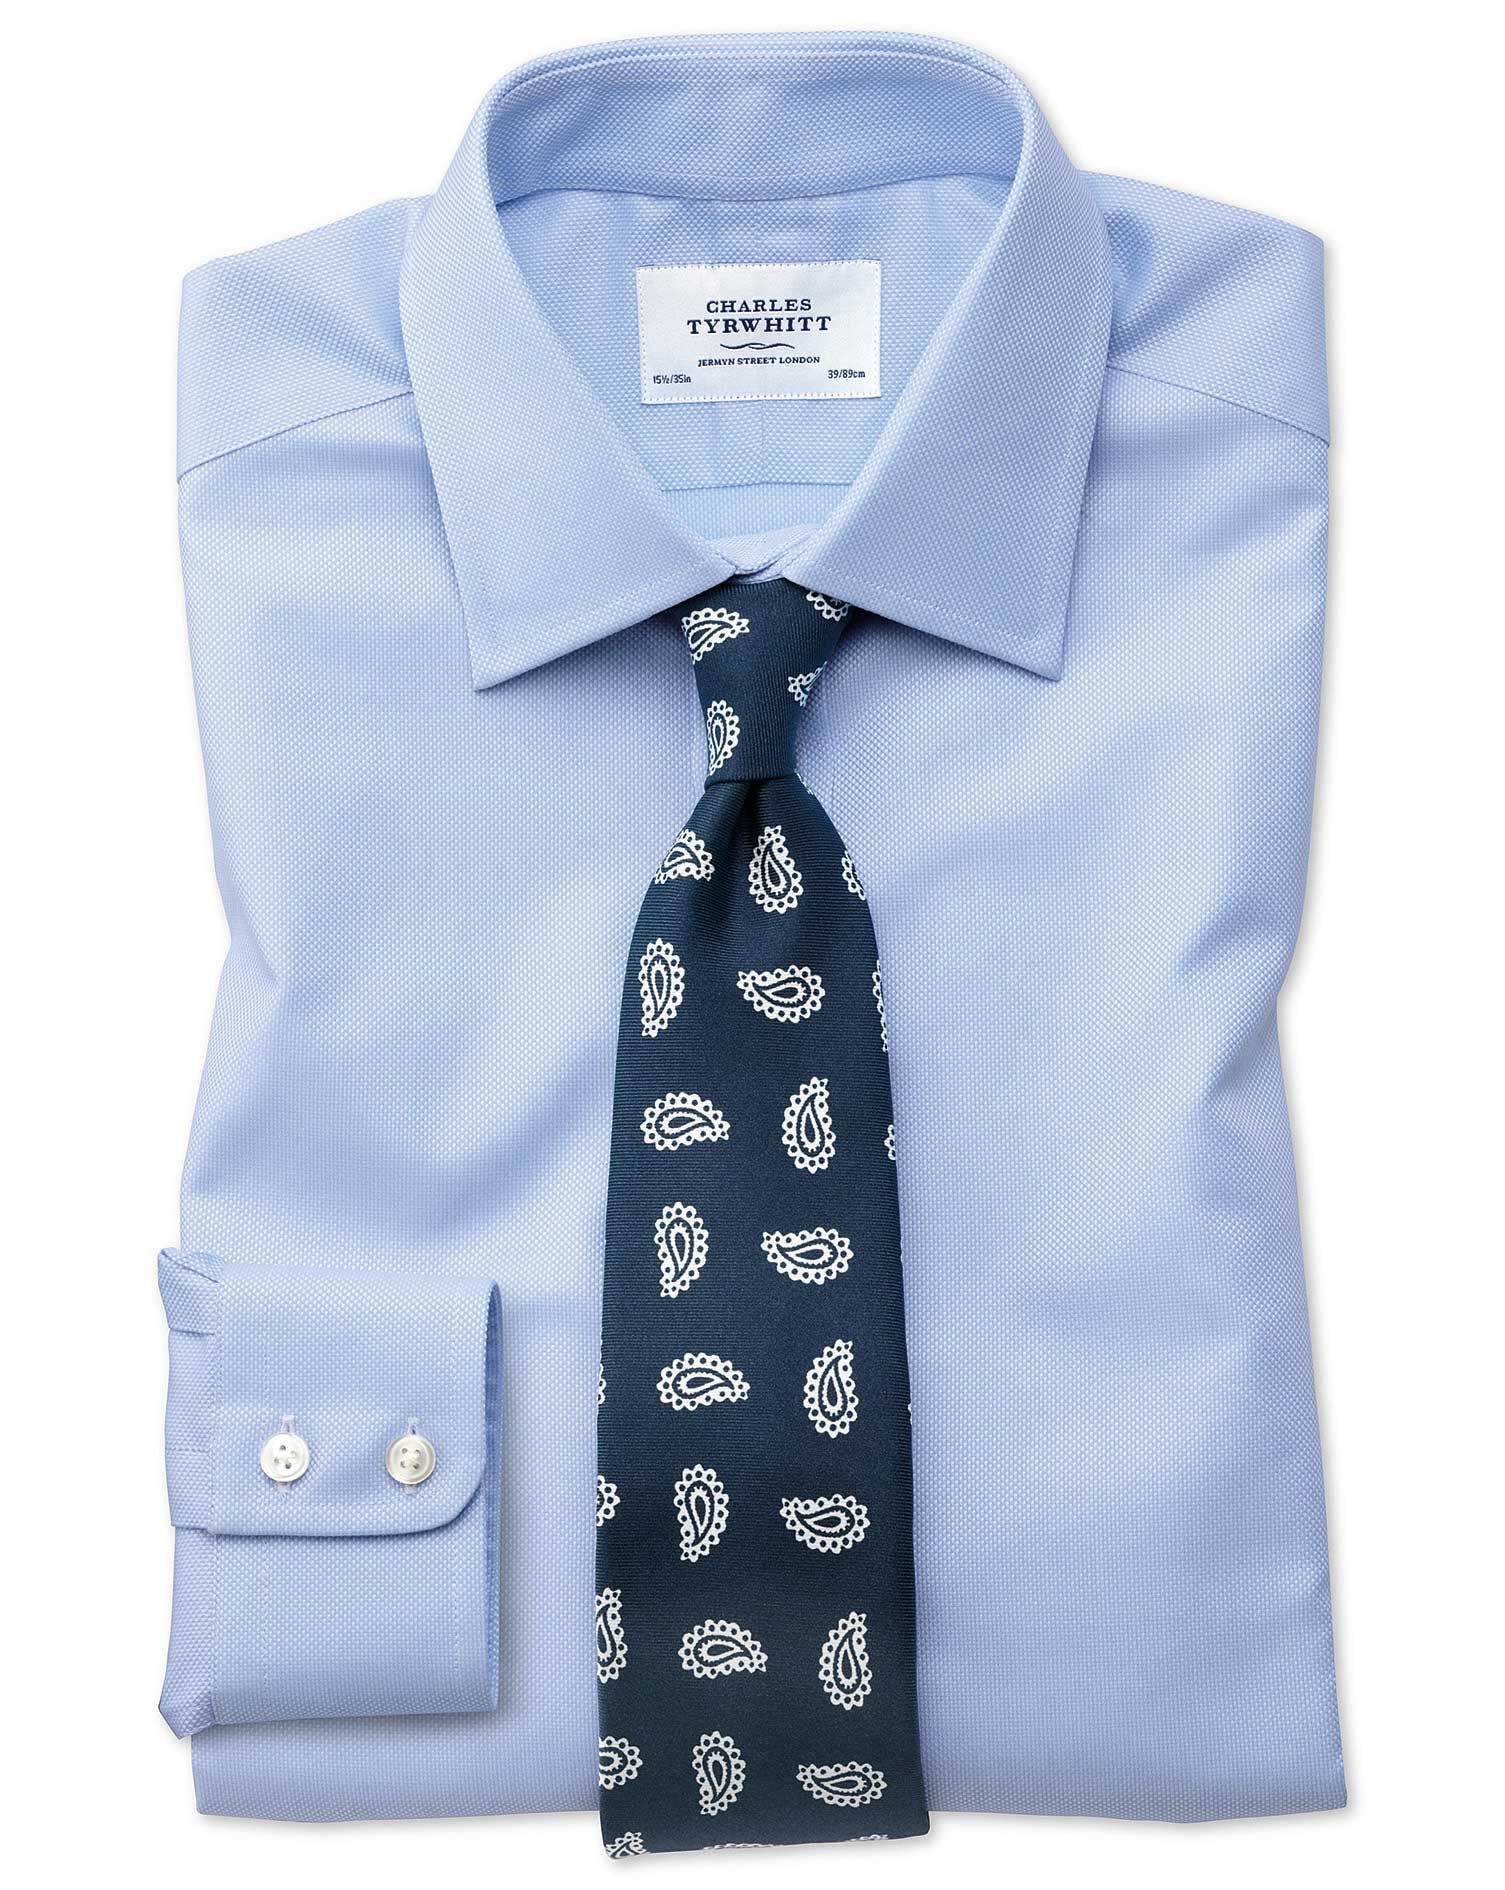 Extra Slim Fit Egyptian Cotton Royal Oxford Sky Blue Formal Shirt Single Cuff Size 17.5/36 by Charle